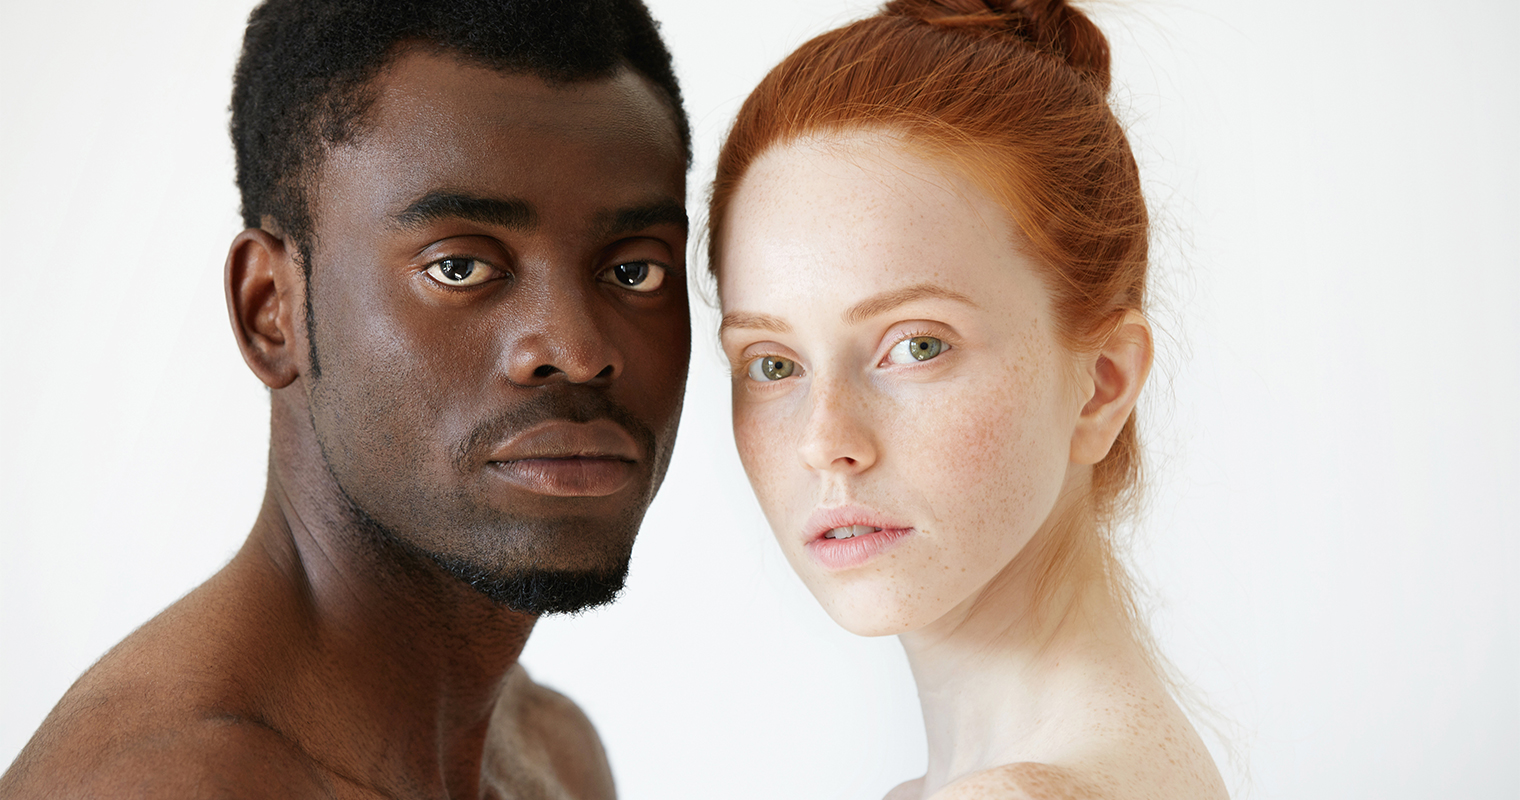 people with genes of black skin and white skin